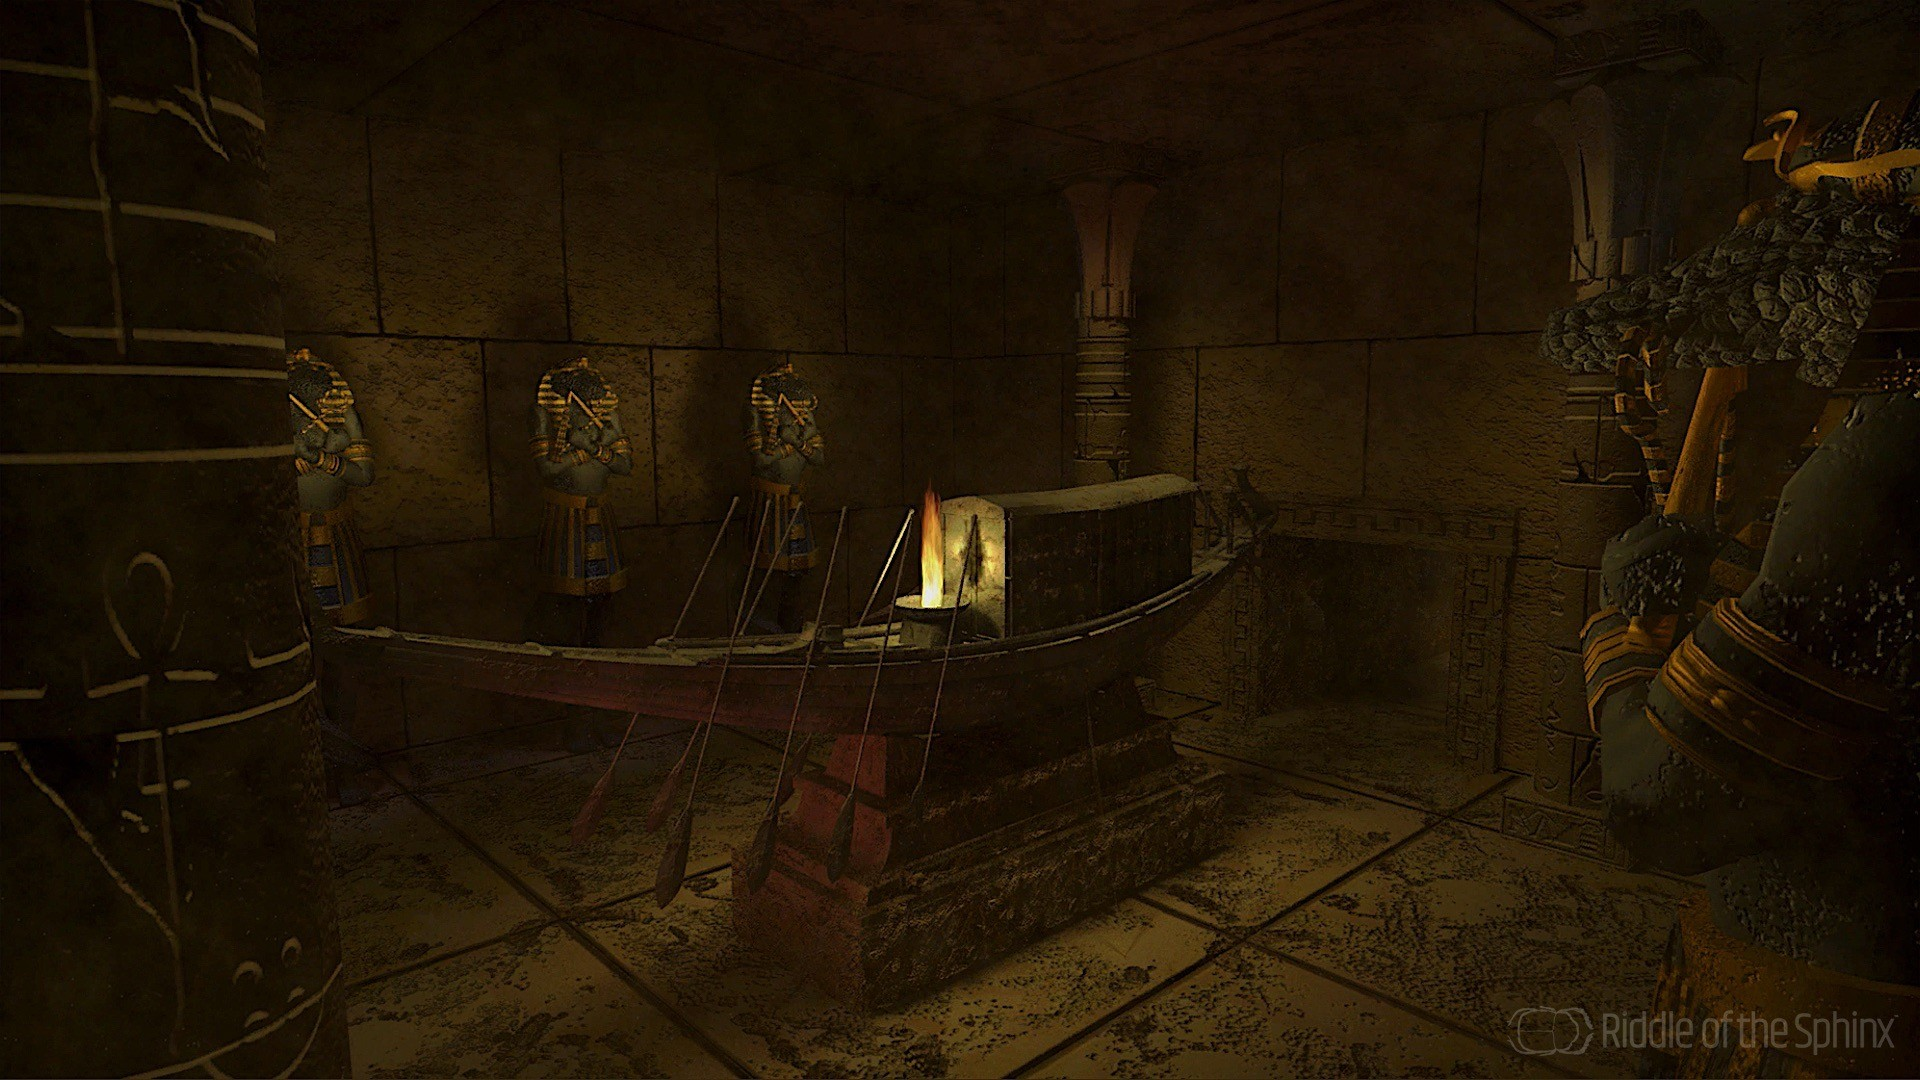 riddle-of-the-sphinx-enhanced-pc-screenshot-4